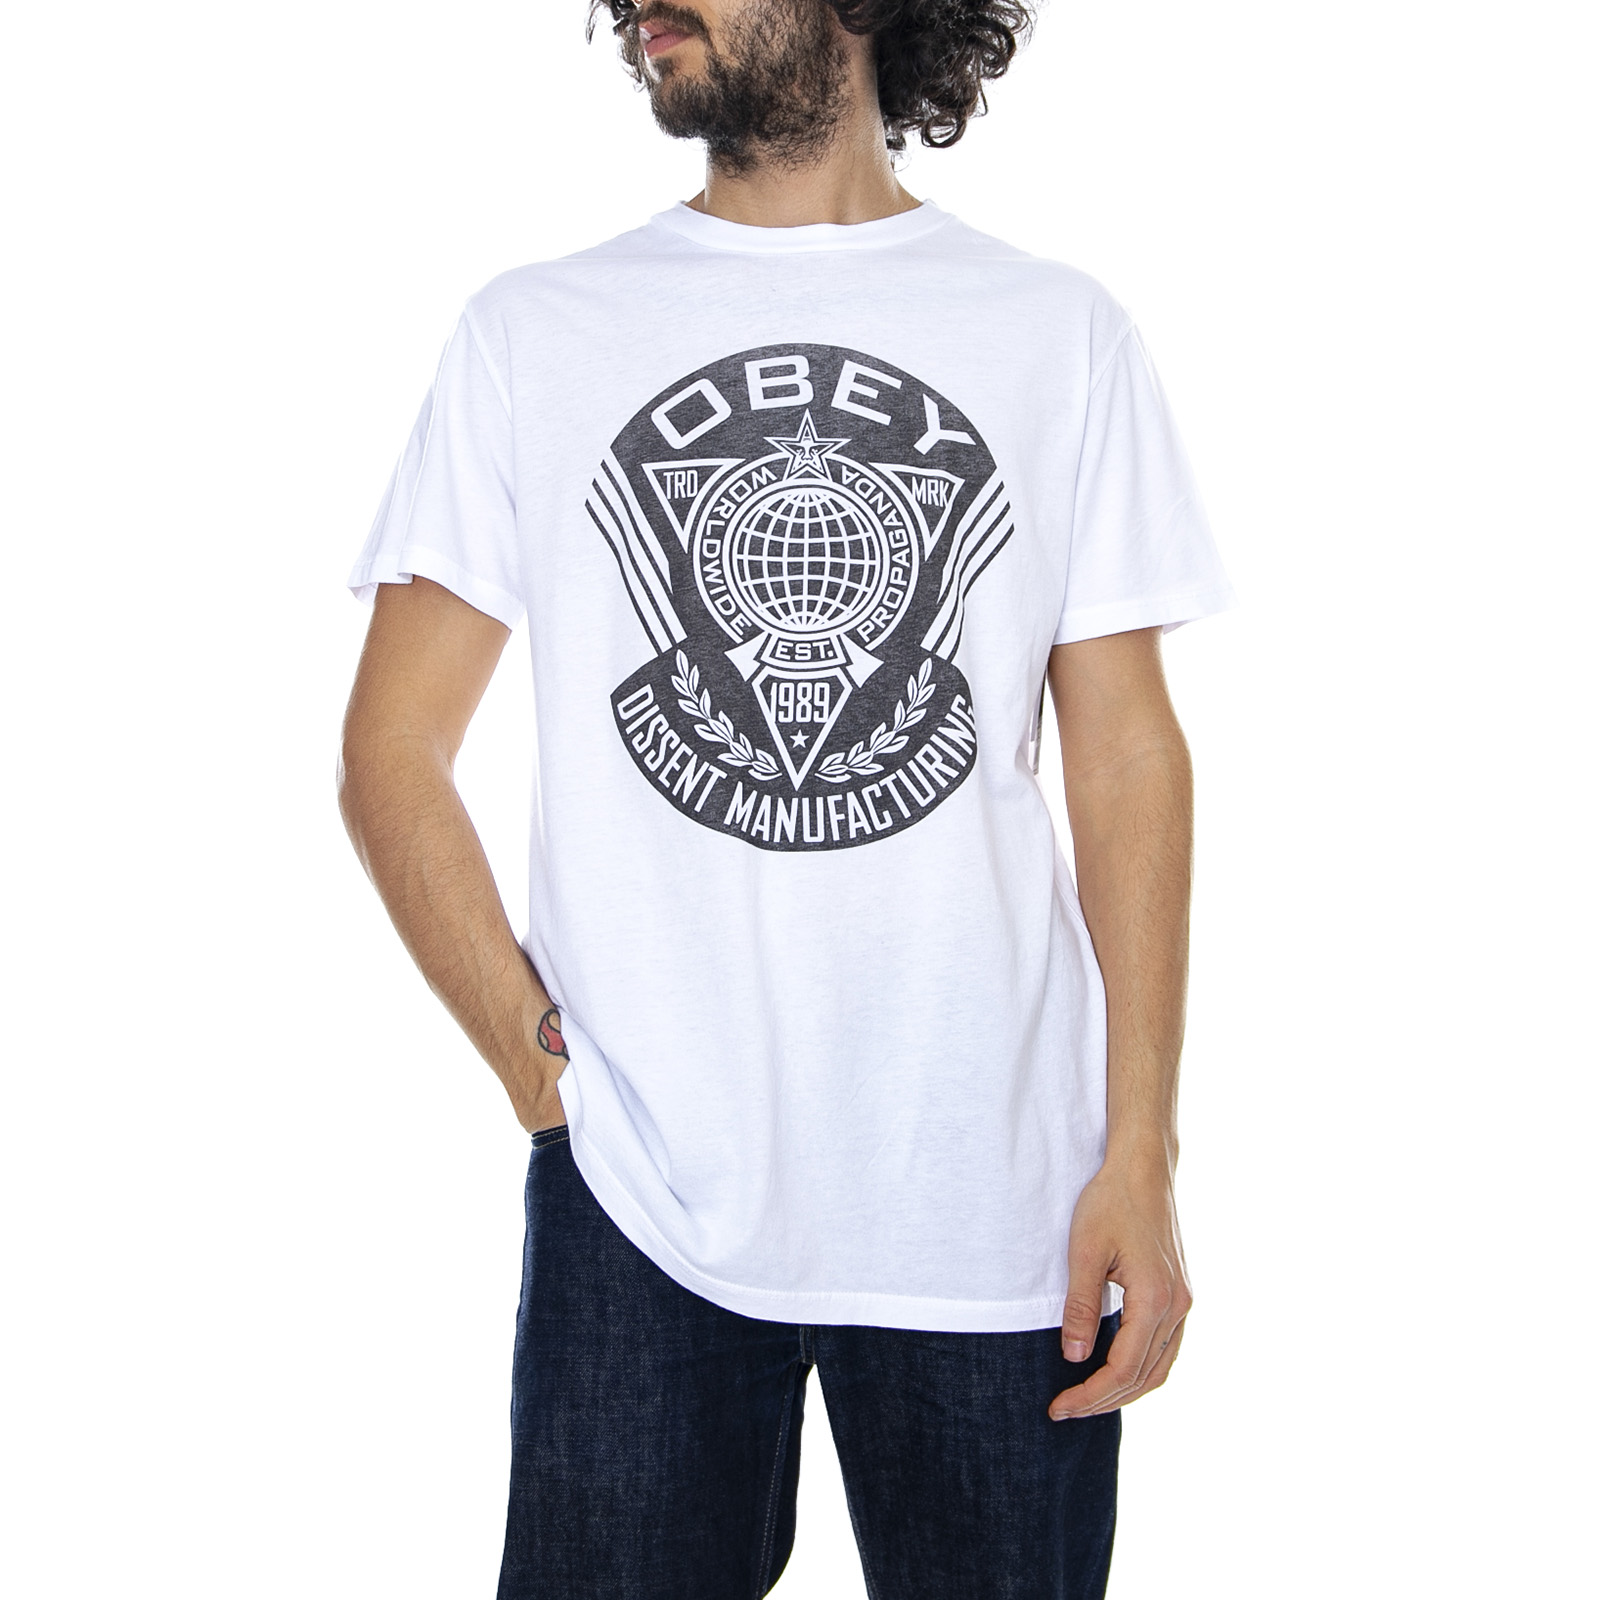 8dd8c6837 Obey World Prop Badge Superior - White - T-shirt Crew-neck Man White ...